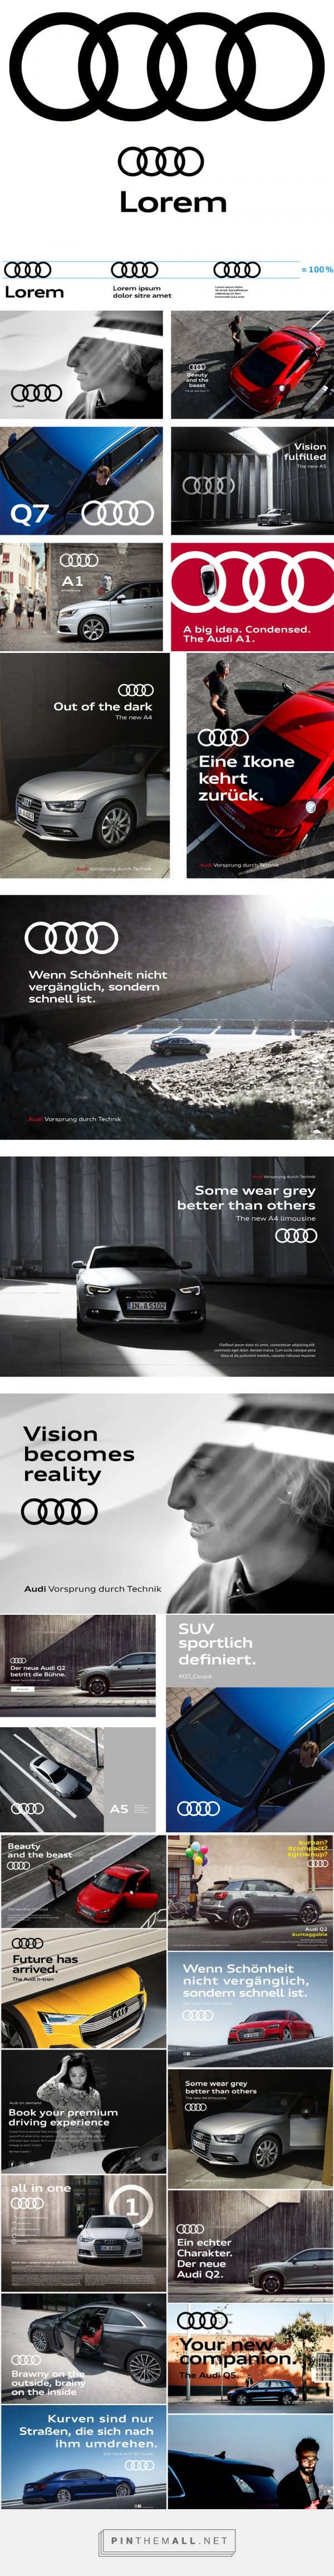 Brand New: New Global Identity for Audi by Strichpunkt and KMS TEAM... - a grouped images picture - Pin Them All